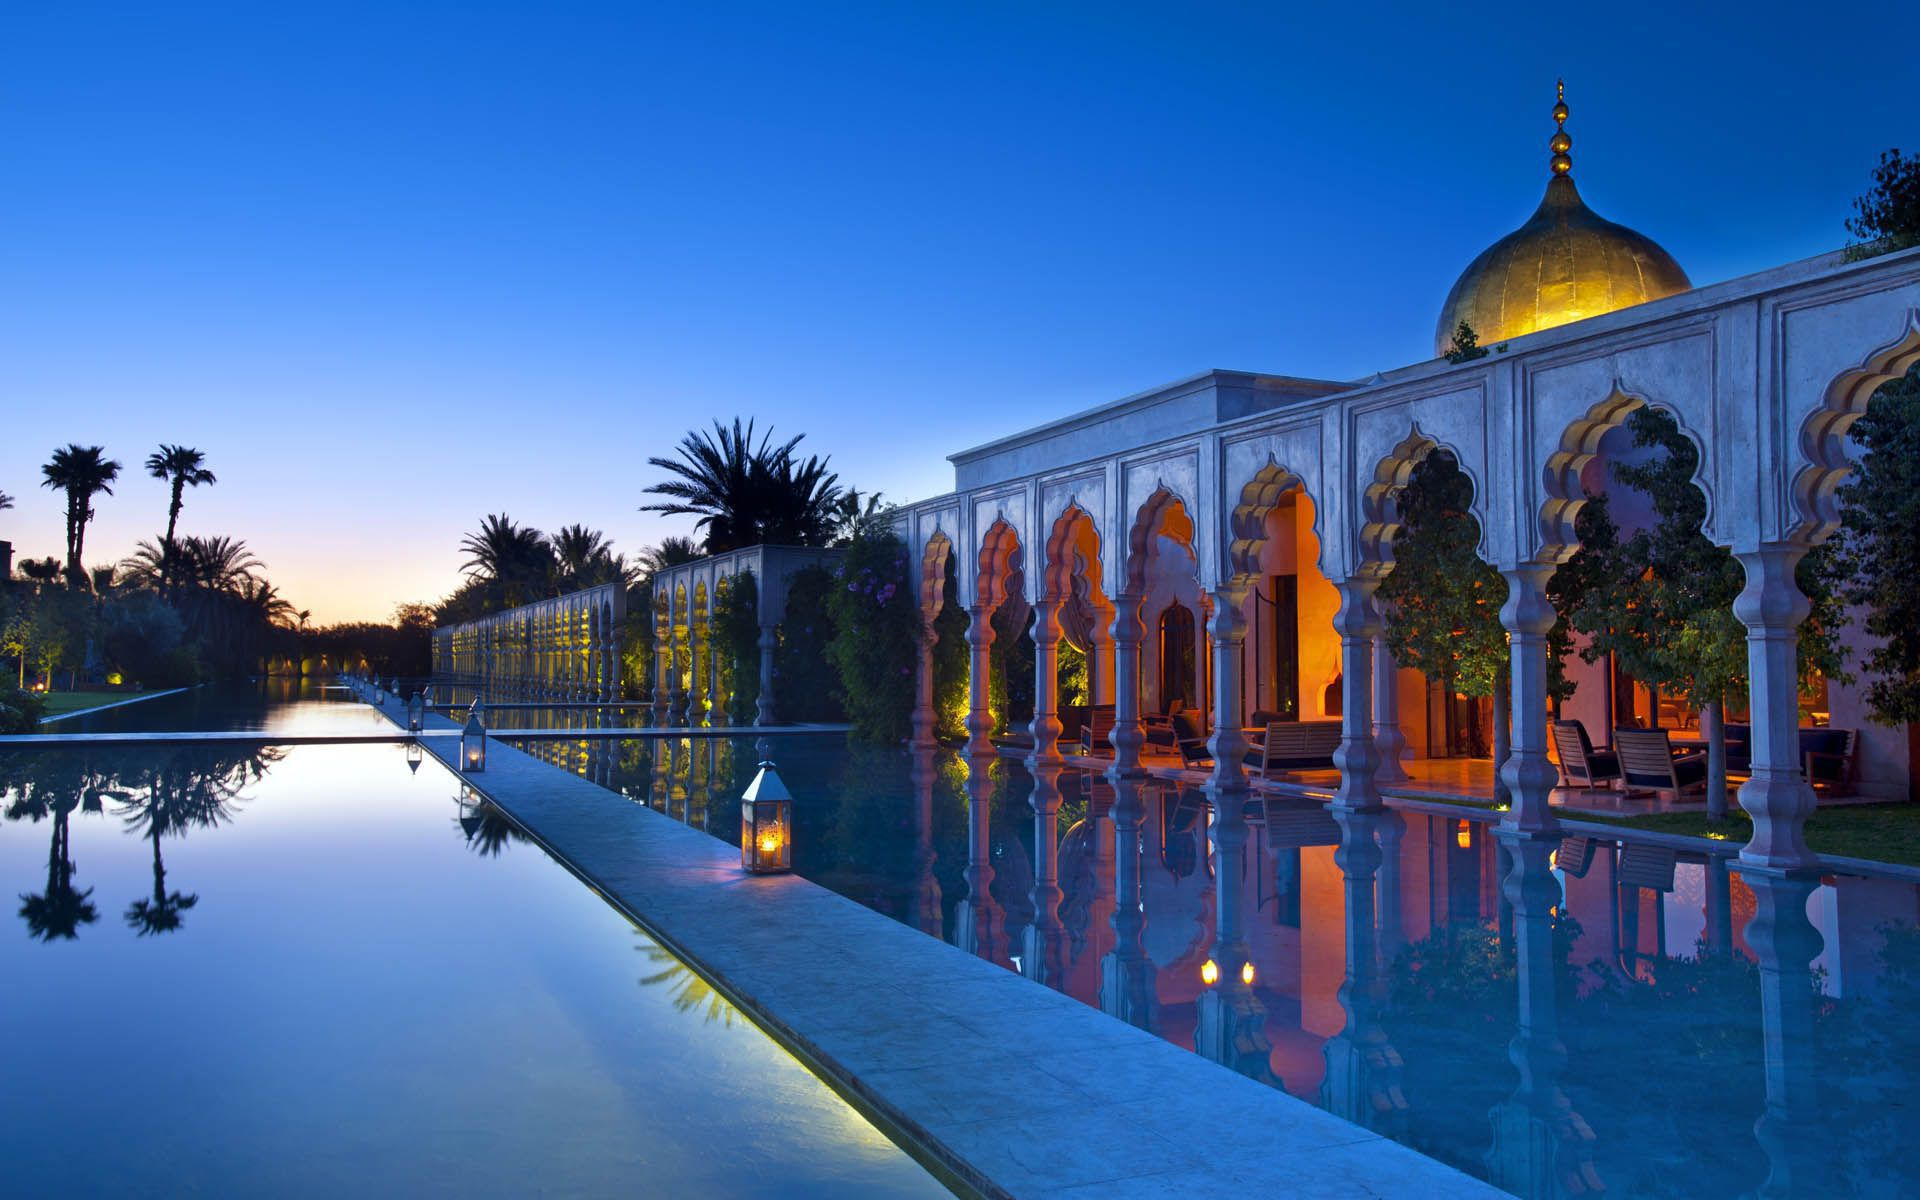 Marrakech Wallpapers Images Photos Pictures Backgrounds 1920x1200